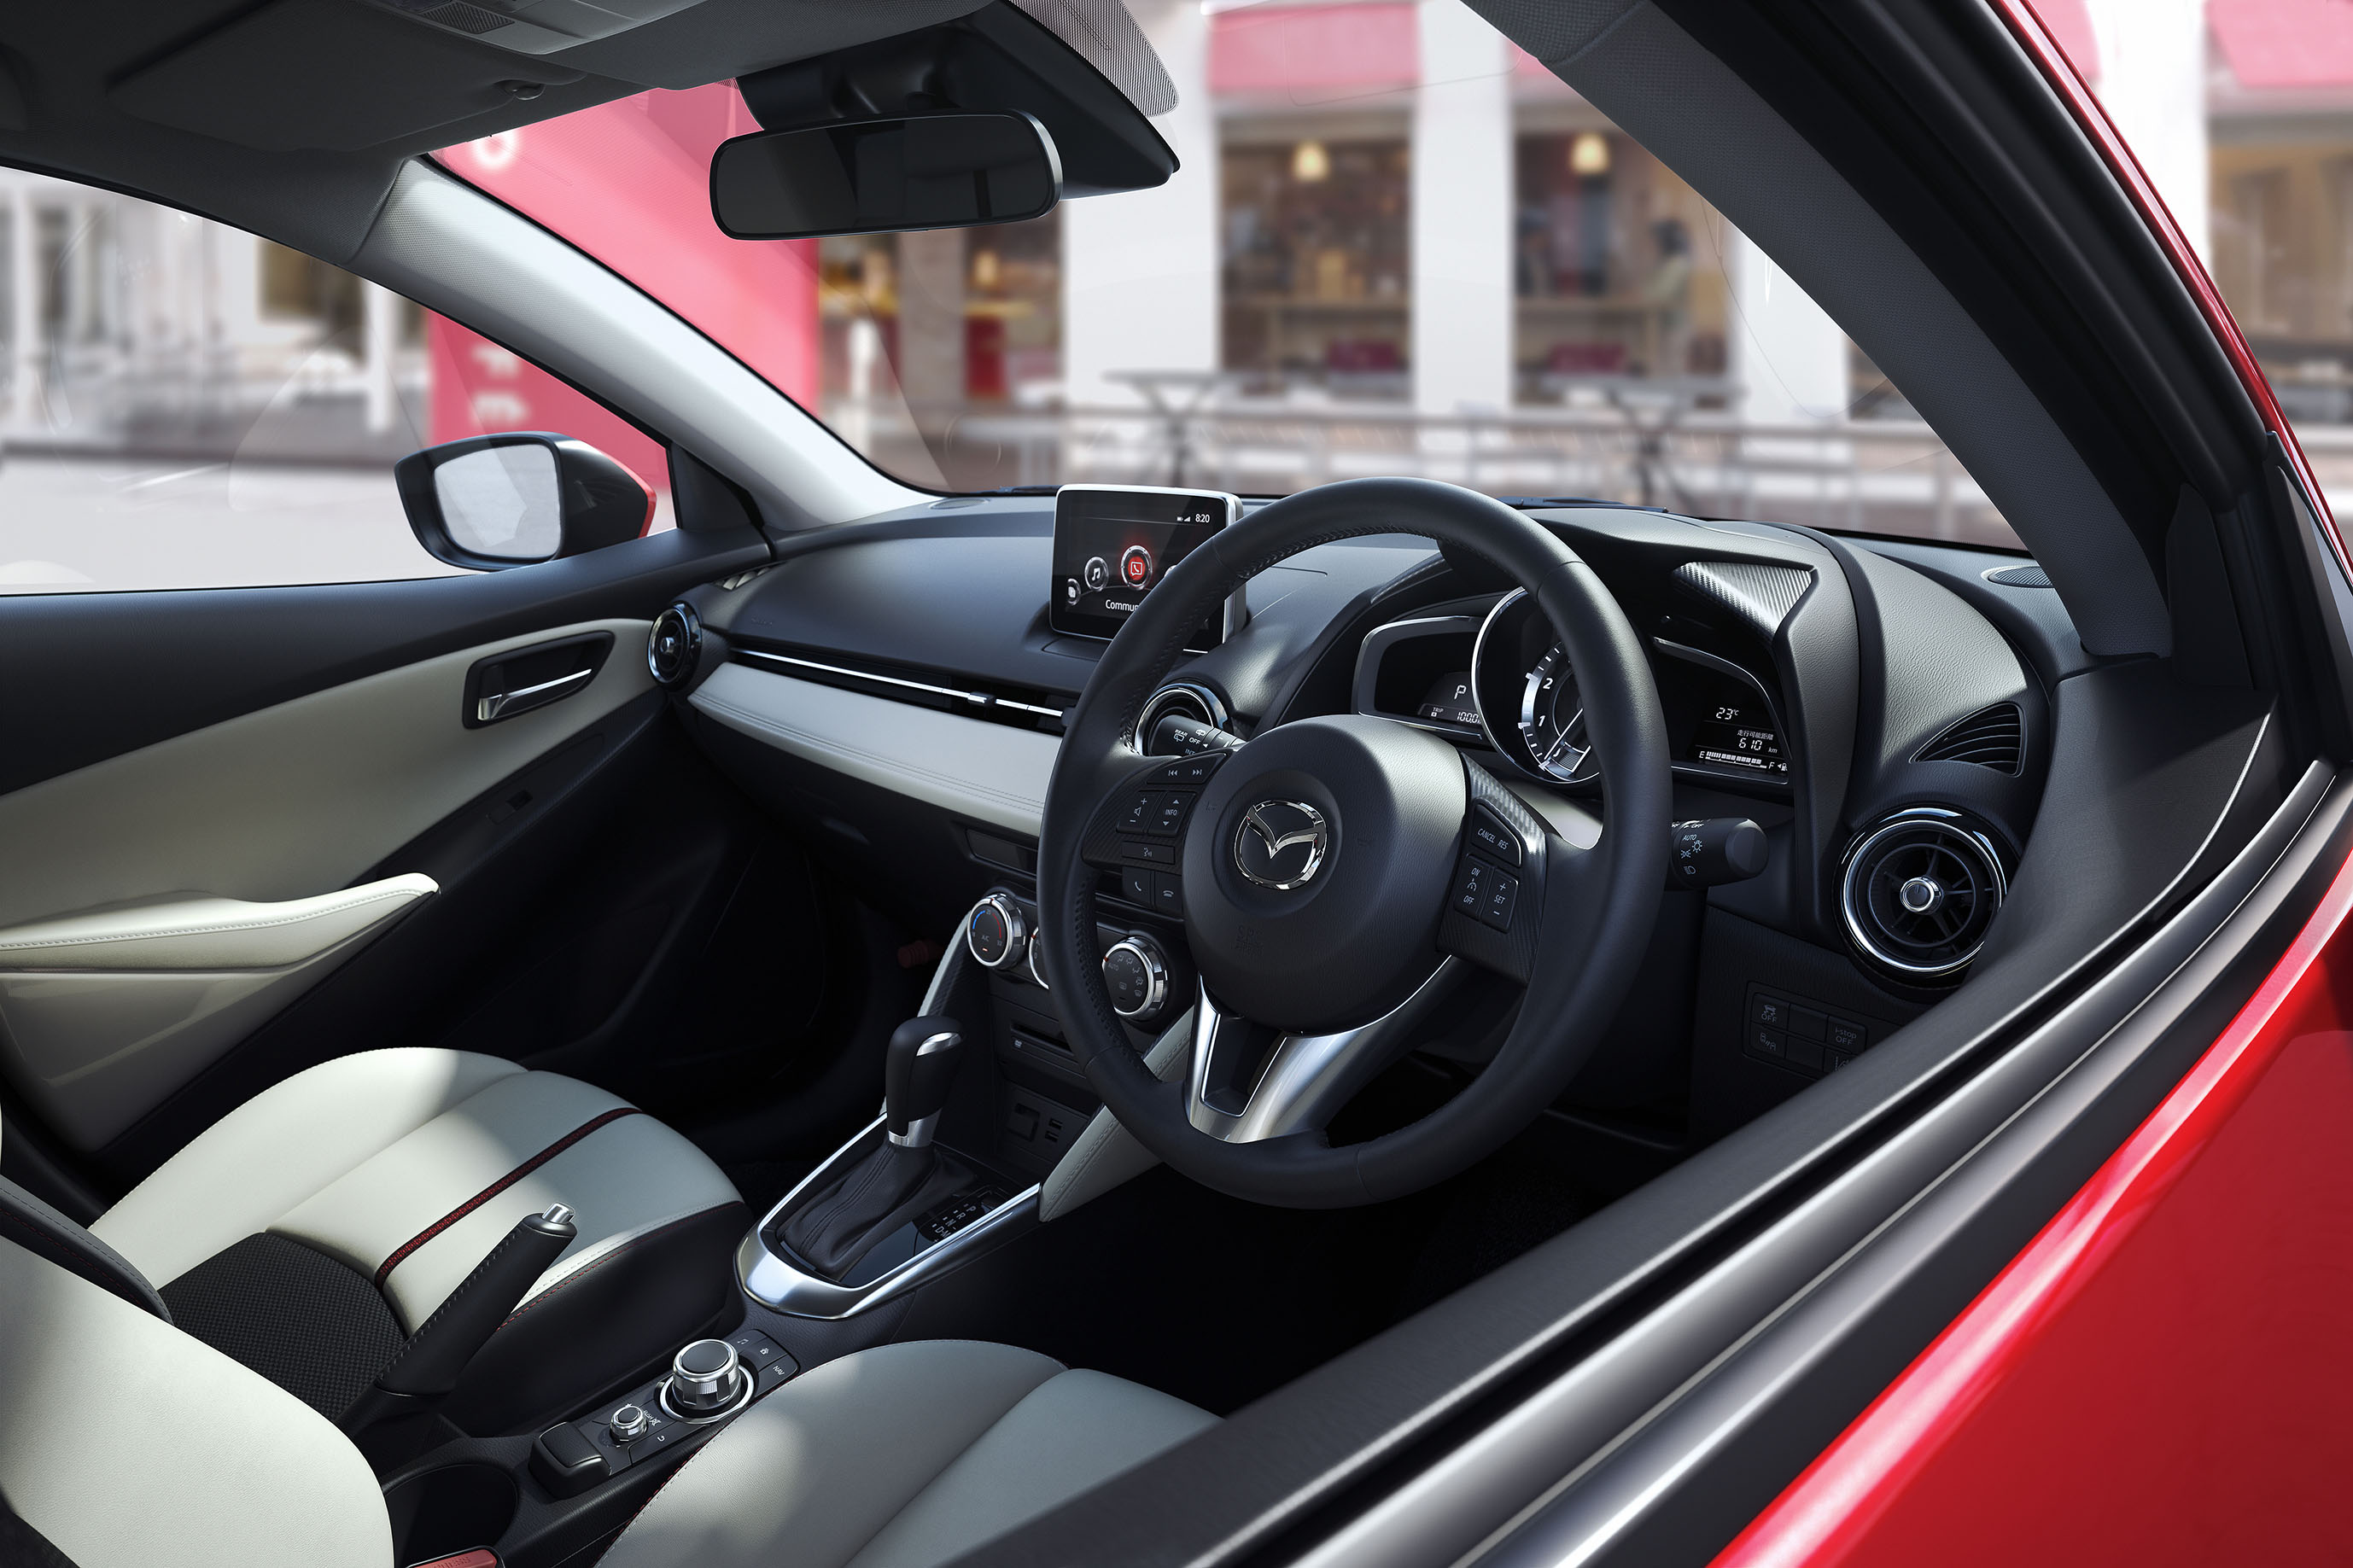 2016 Mazda 2 Cockpit and Dashboard